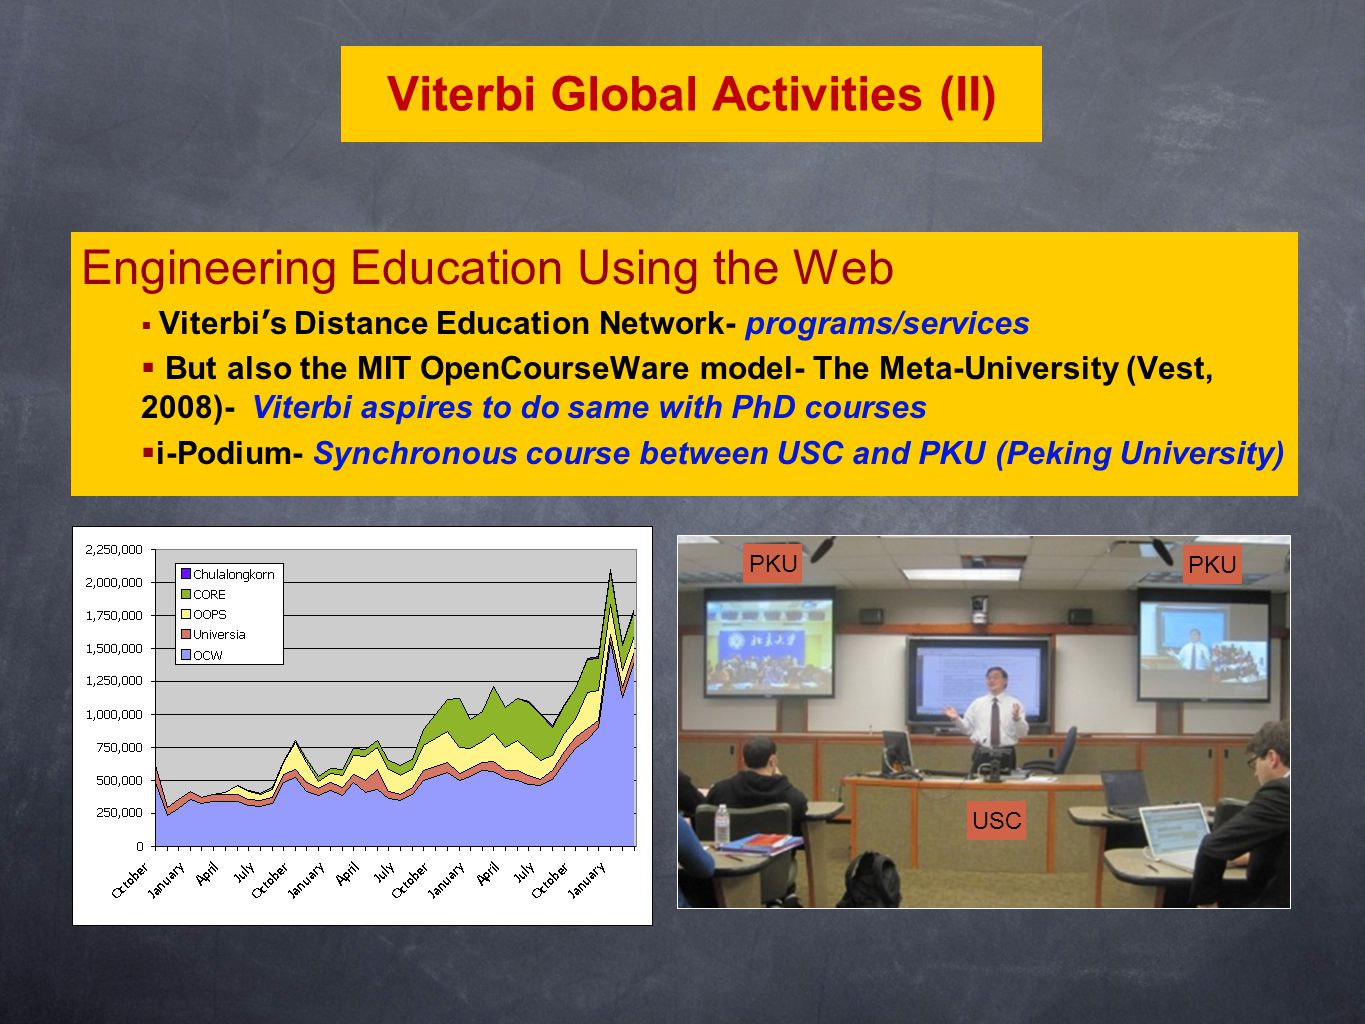 Engineering Education Using the Web  Viterbi ' s Distance Education Network- programs/services  But also the MIT OpenCourseWare model- The Meta-University (Vest, 2008)- Viterbi aspires to do same with PhD courses  i-Podium- Synchronous course between USC and PKU (Peking University) Viterbi Global Activities (II) PKU USC PKU